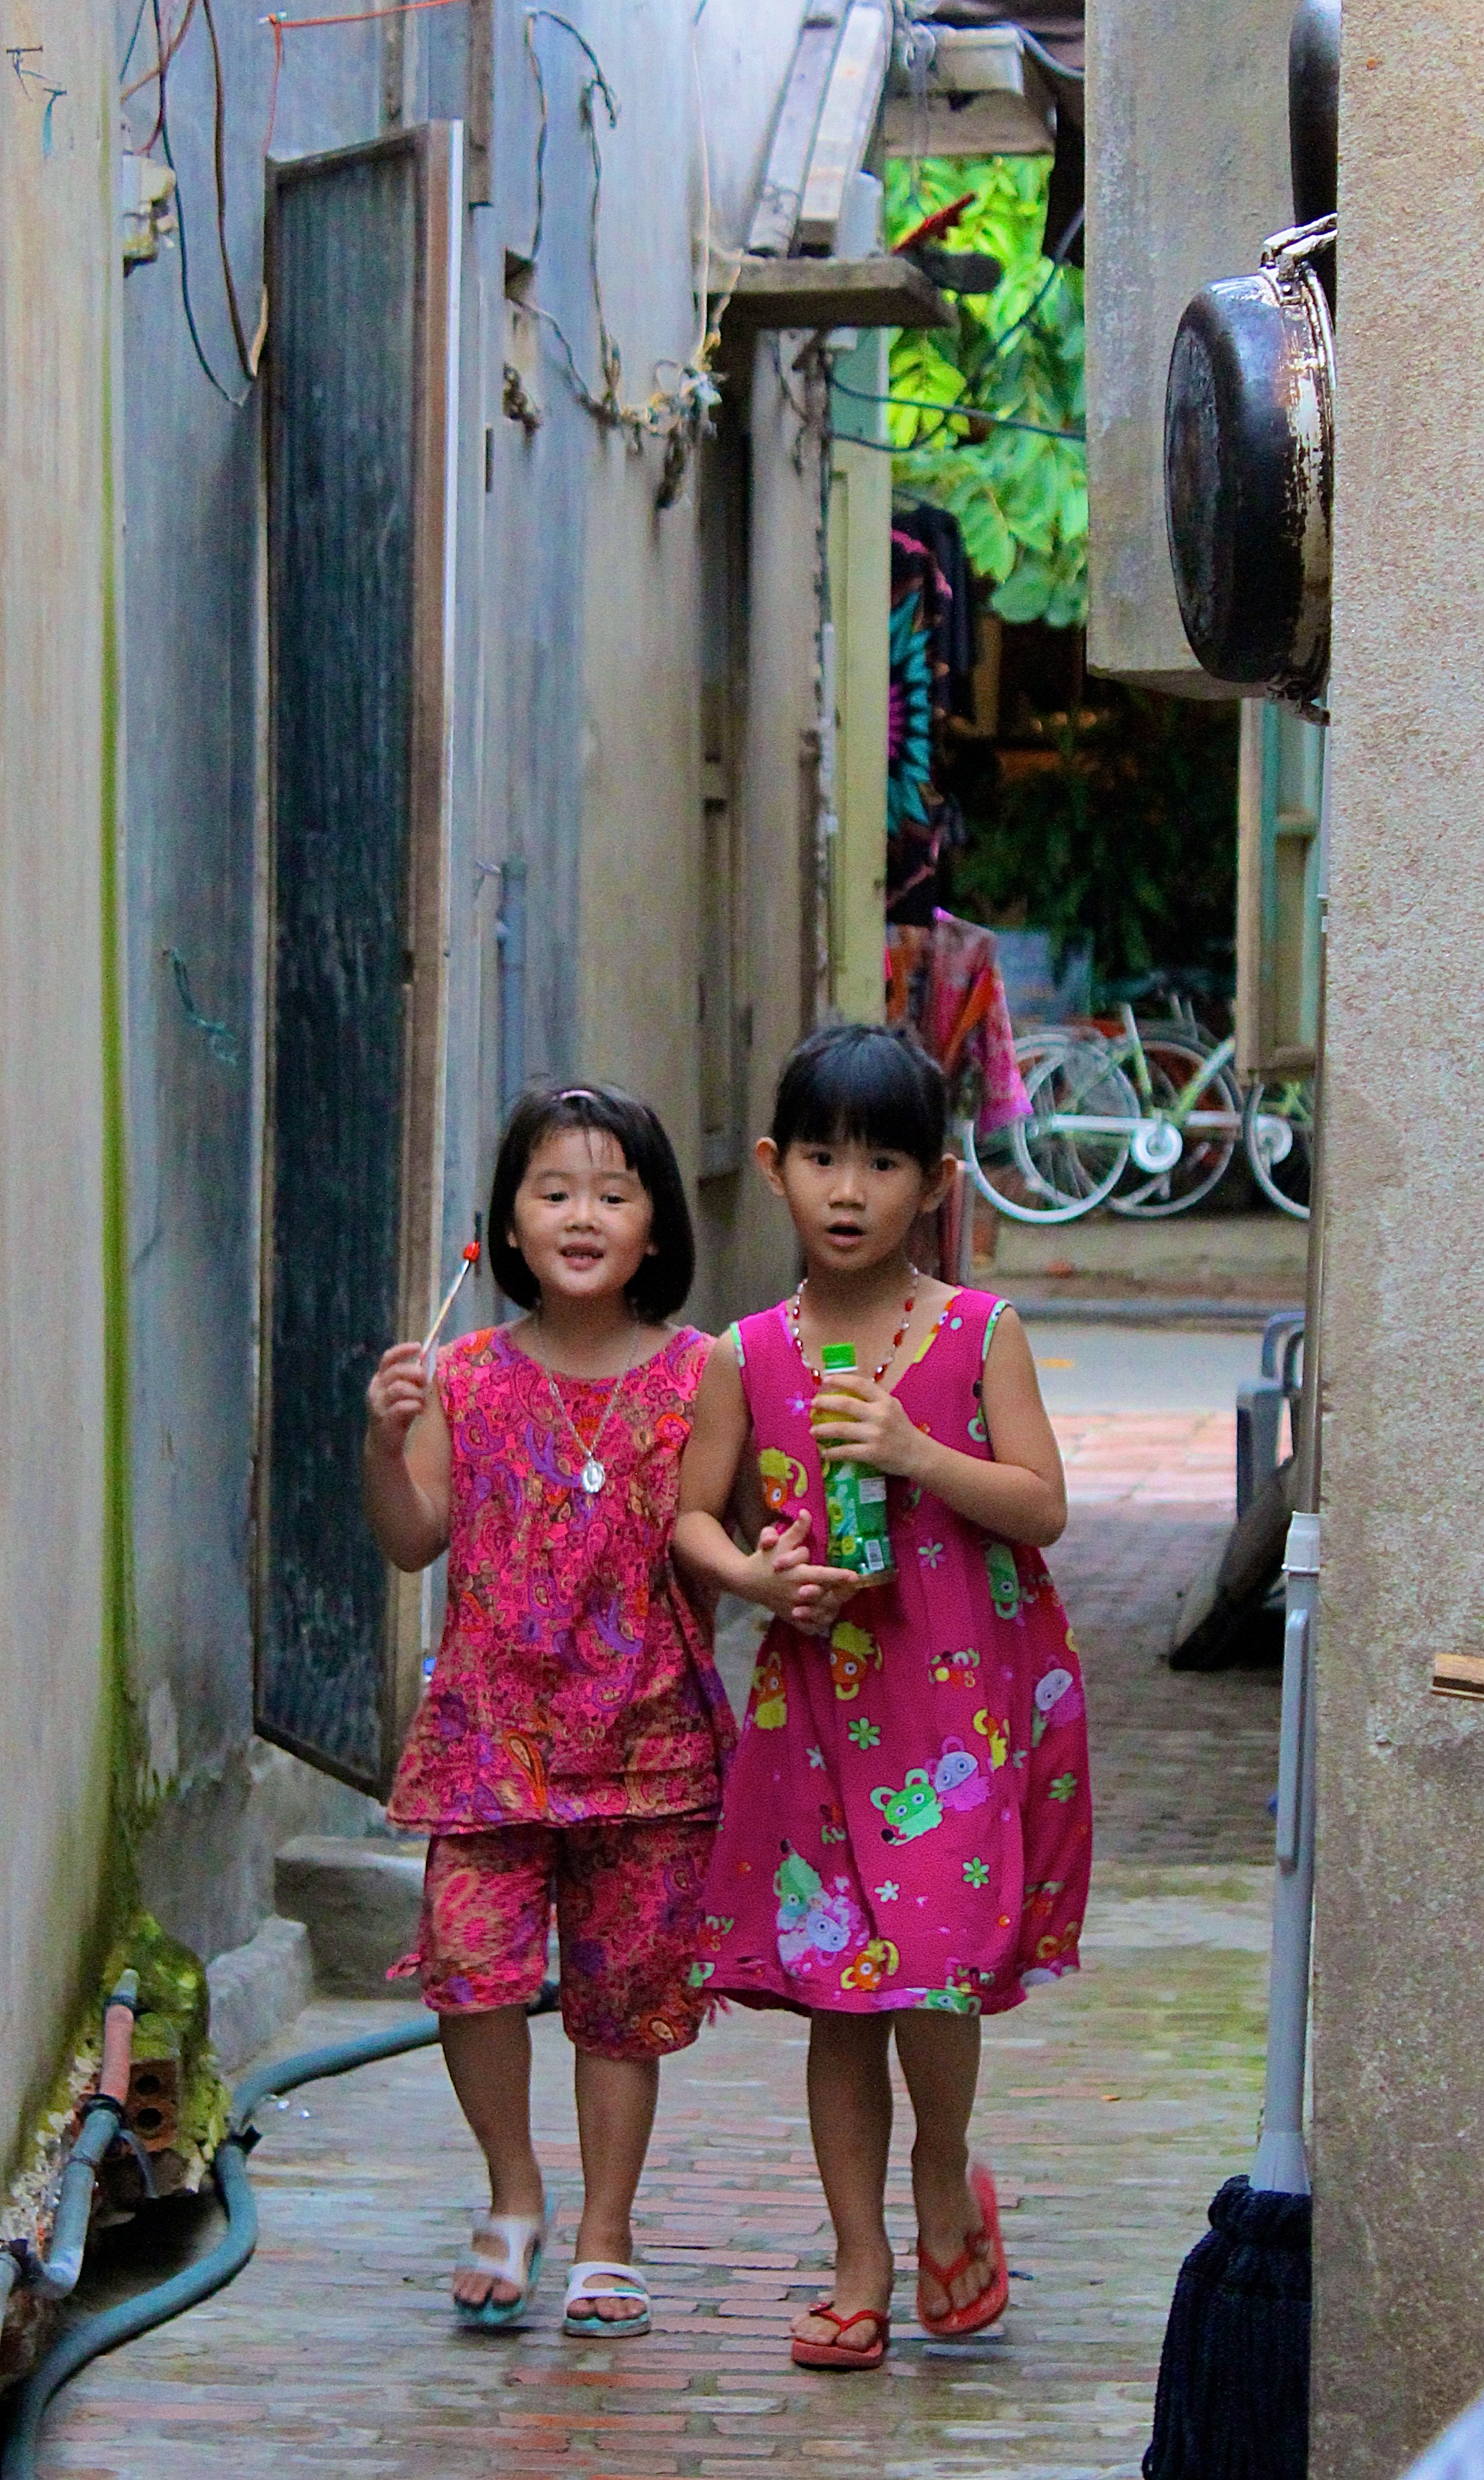 In the many back lanes of the Ancient Town of Hoi An, a quiet domestic life prevails (Vietnam) © Nisha D'Souza and Isheet Sumra